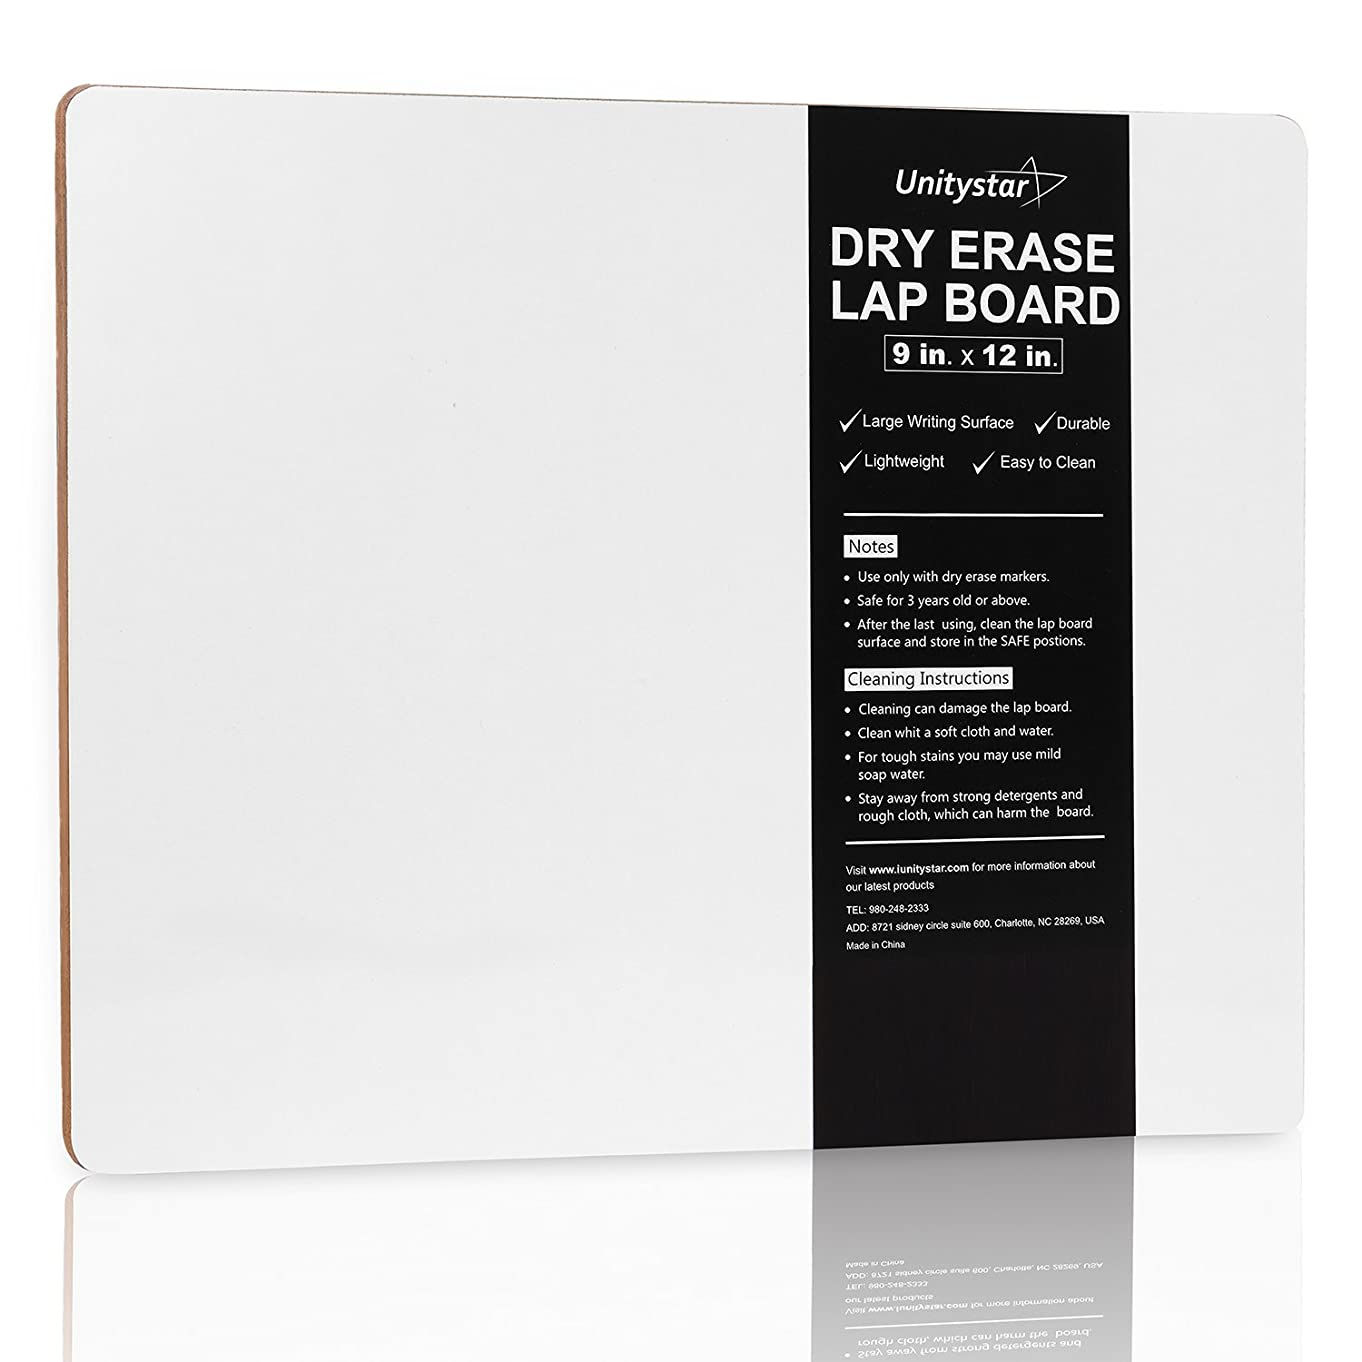 Dry Erase Board, UnityStar 9 x 12 inches Small Dry Erase Lap Boards Portable Classroom Whiteboard for Students Teachers Kids Writing Drawing, Single-Sided,0.4LBS